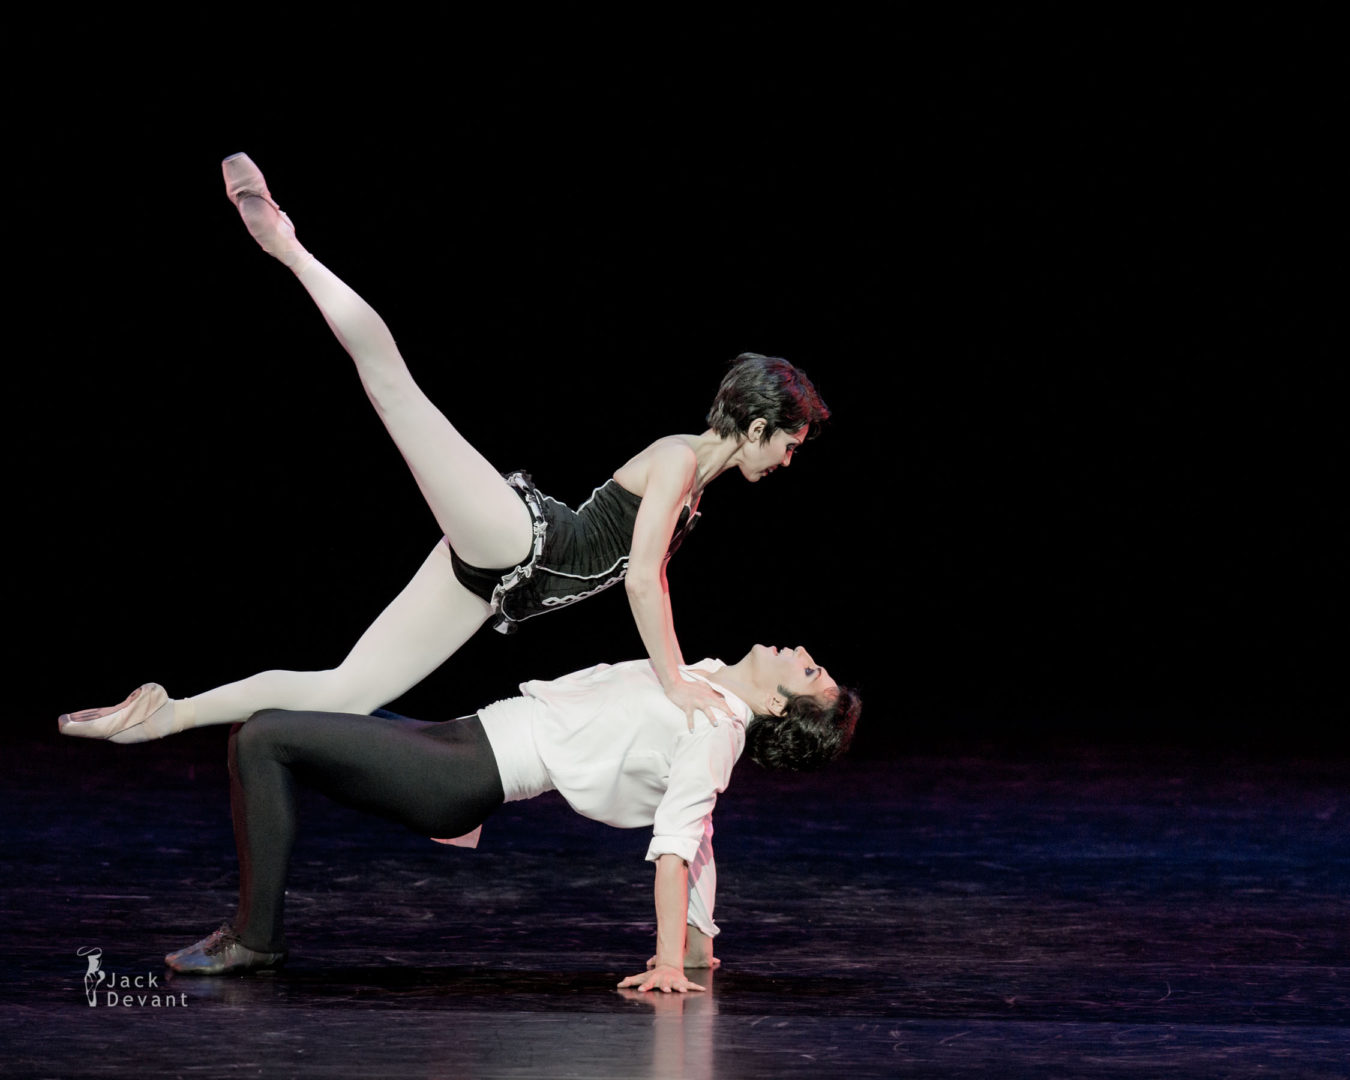 Gaukhar Usina and Rustem Seitbekov in Carmen pdd